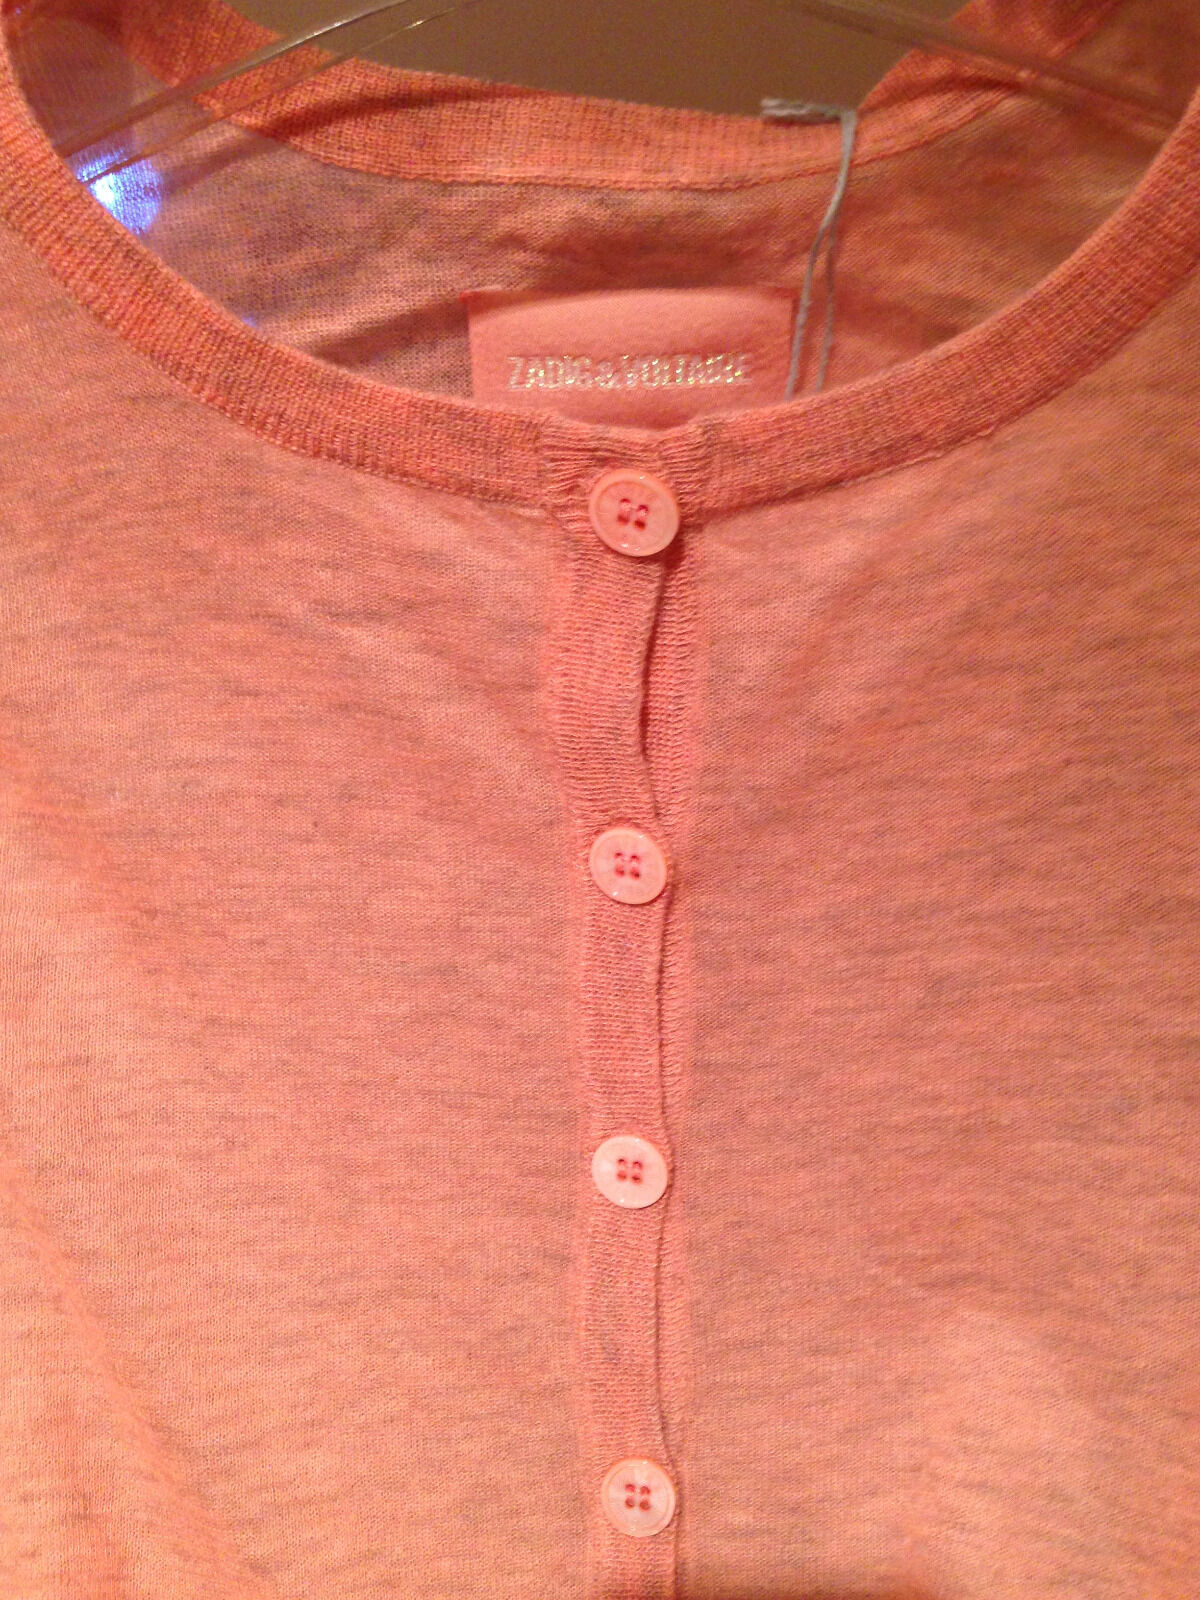 NWT  Zadig & Voltaire coral wool gauze henley size M